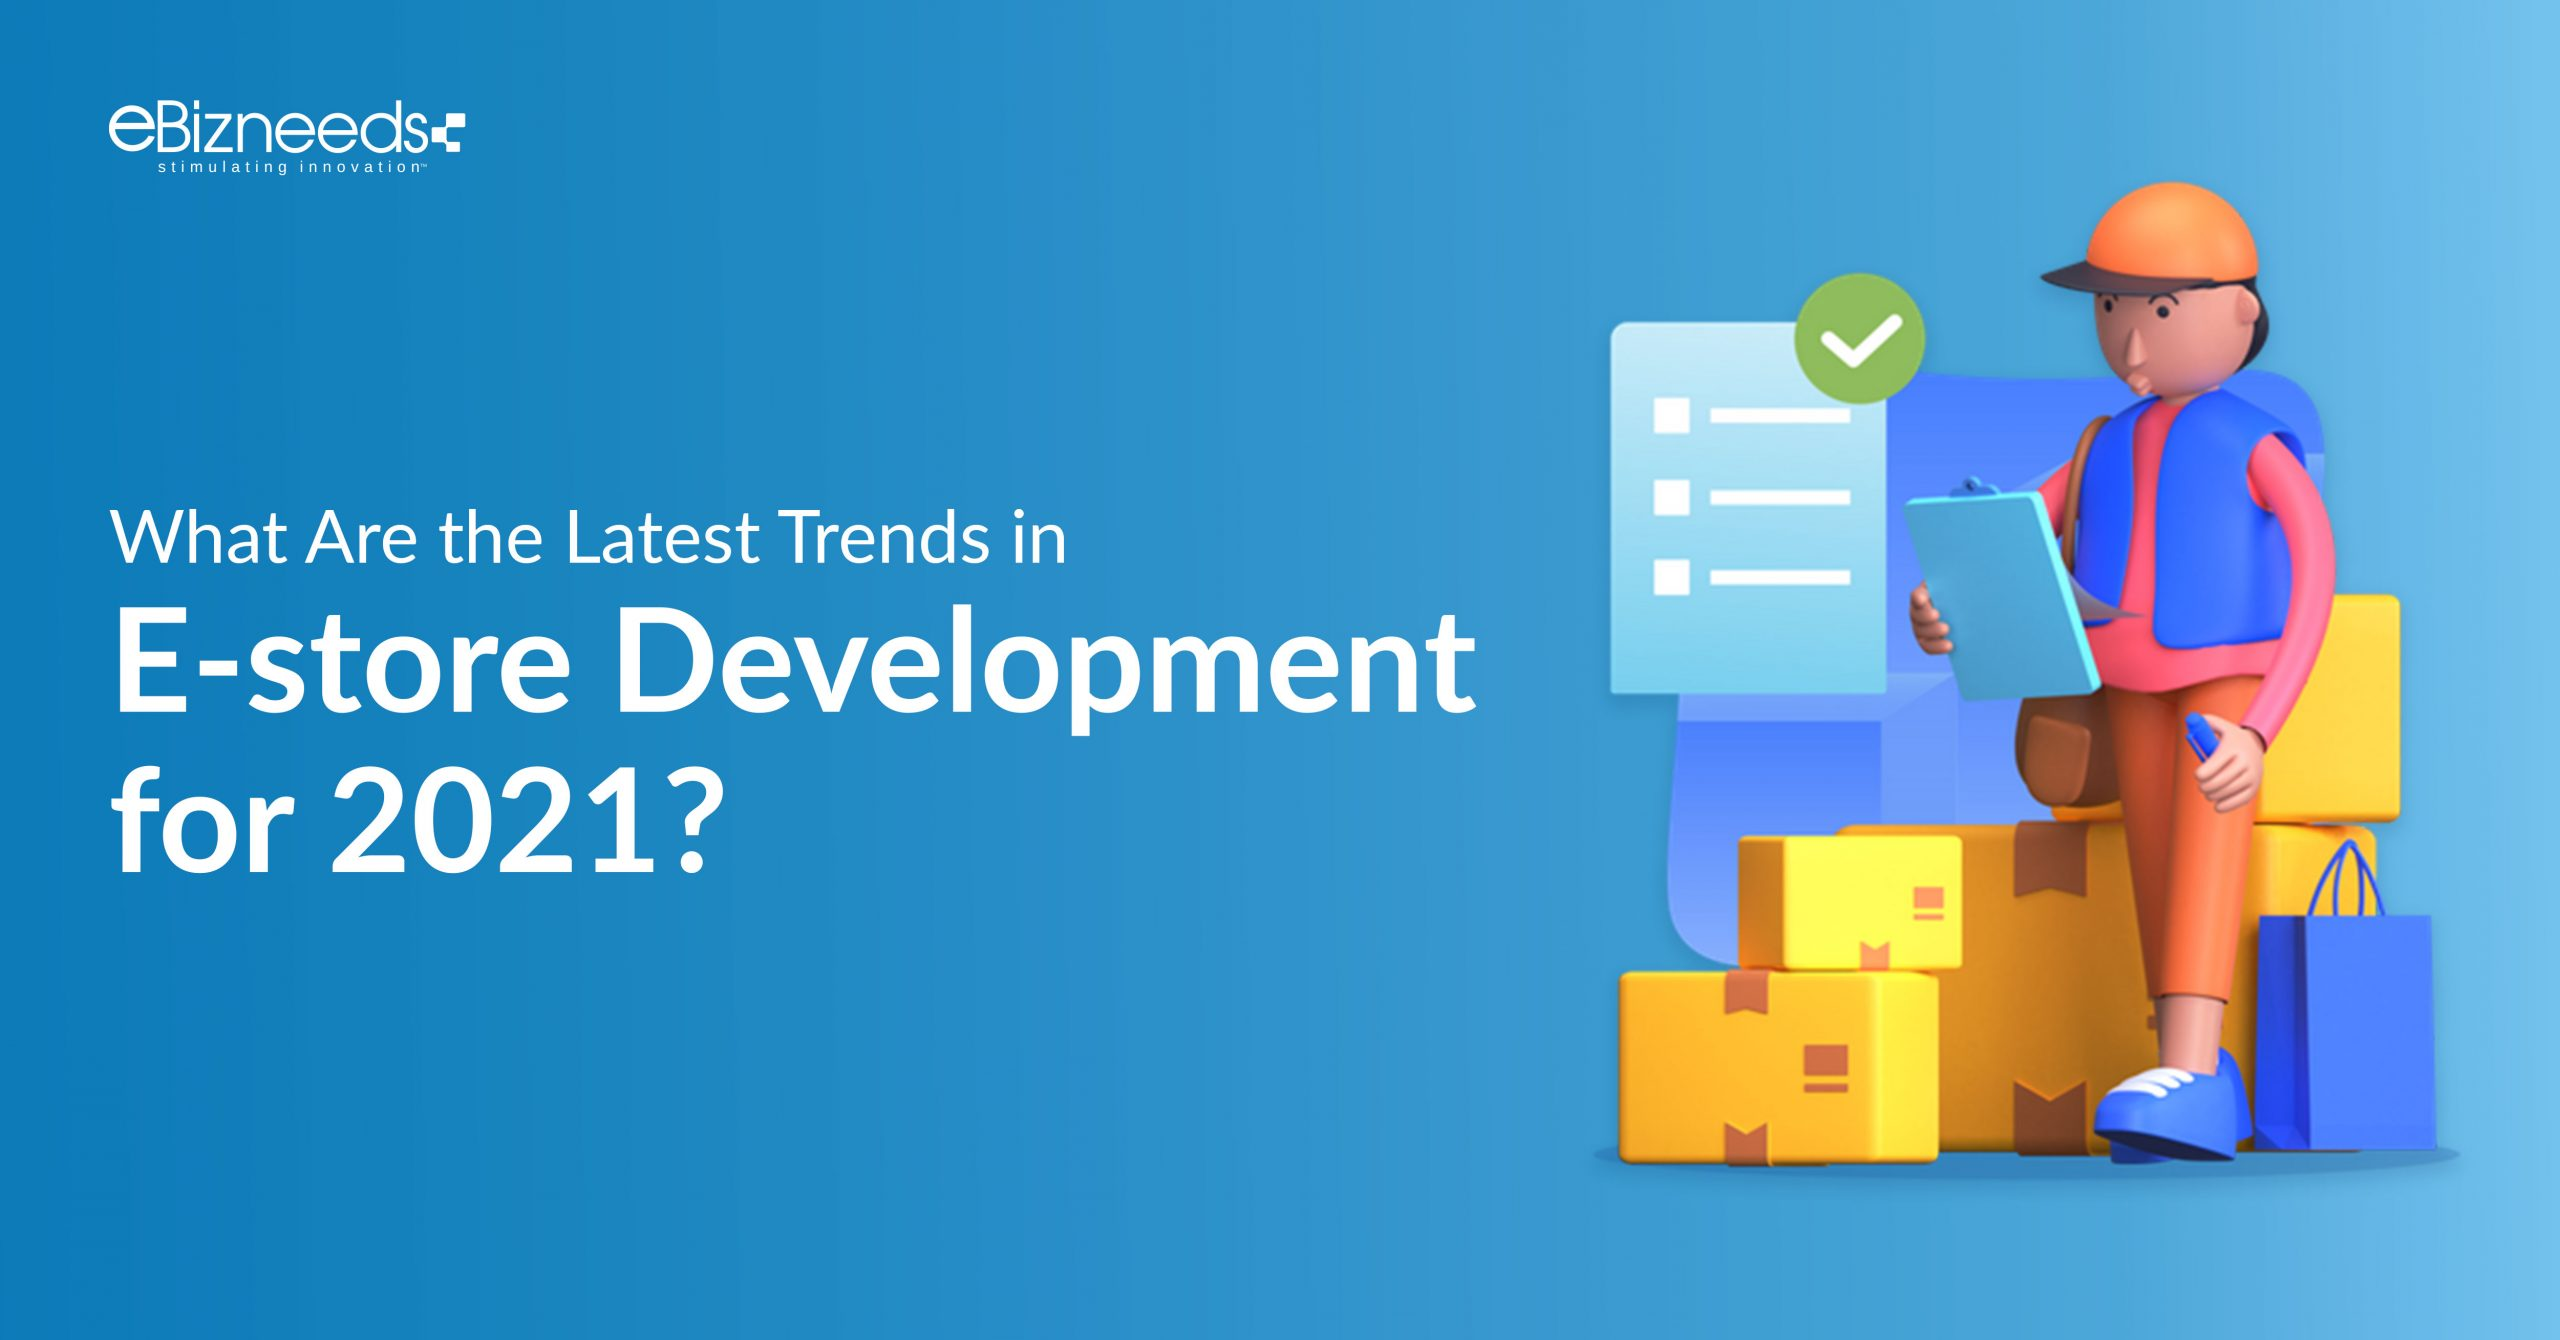 What are the Latest Trends in E-store Development for 2021